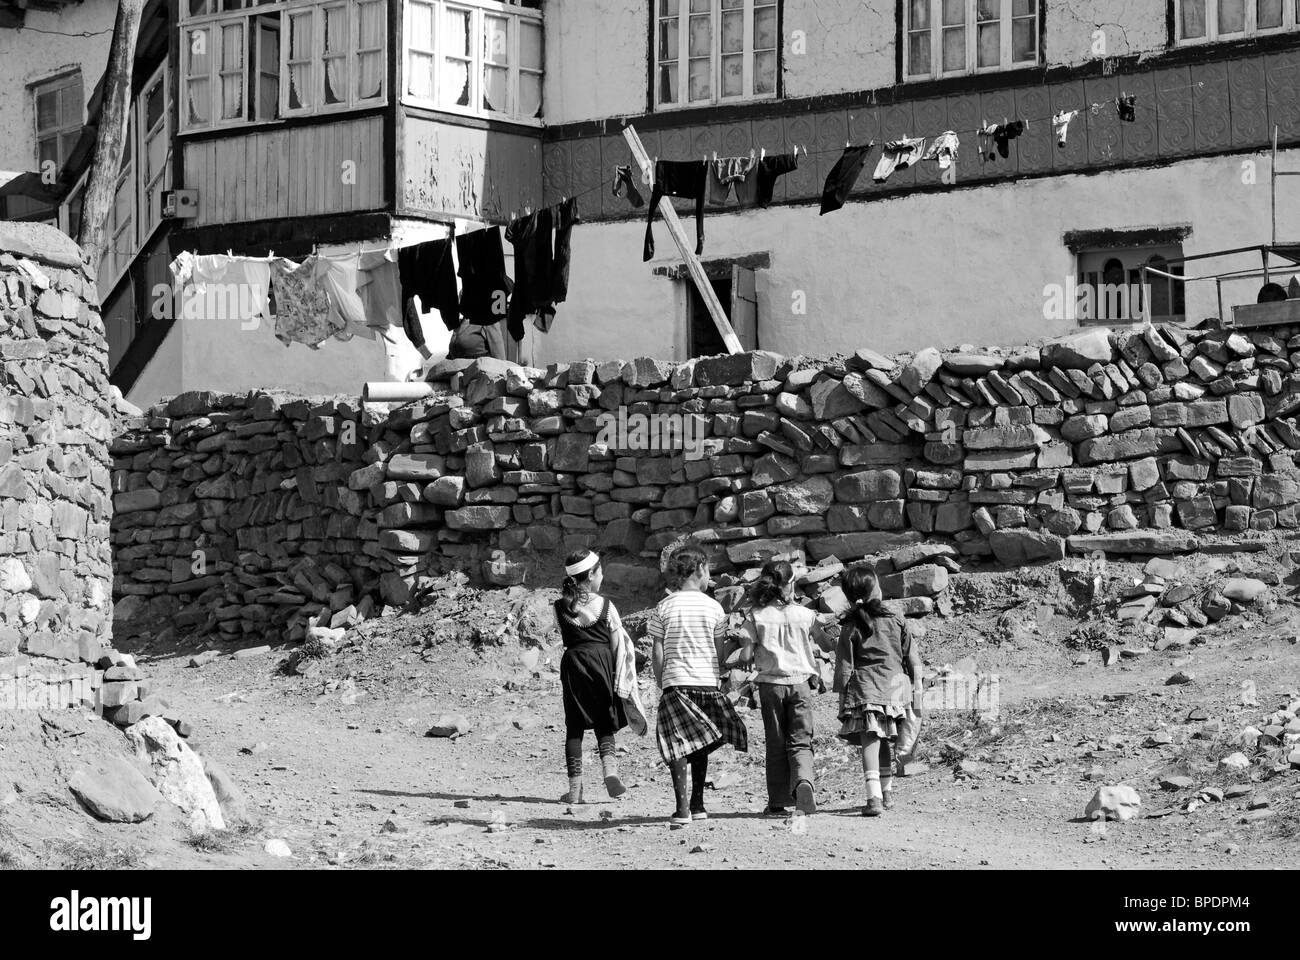 azerbaijan, xinaliq, view of old-fashioned house with clothesline